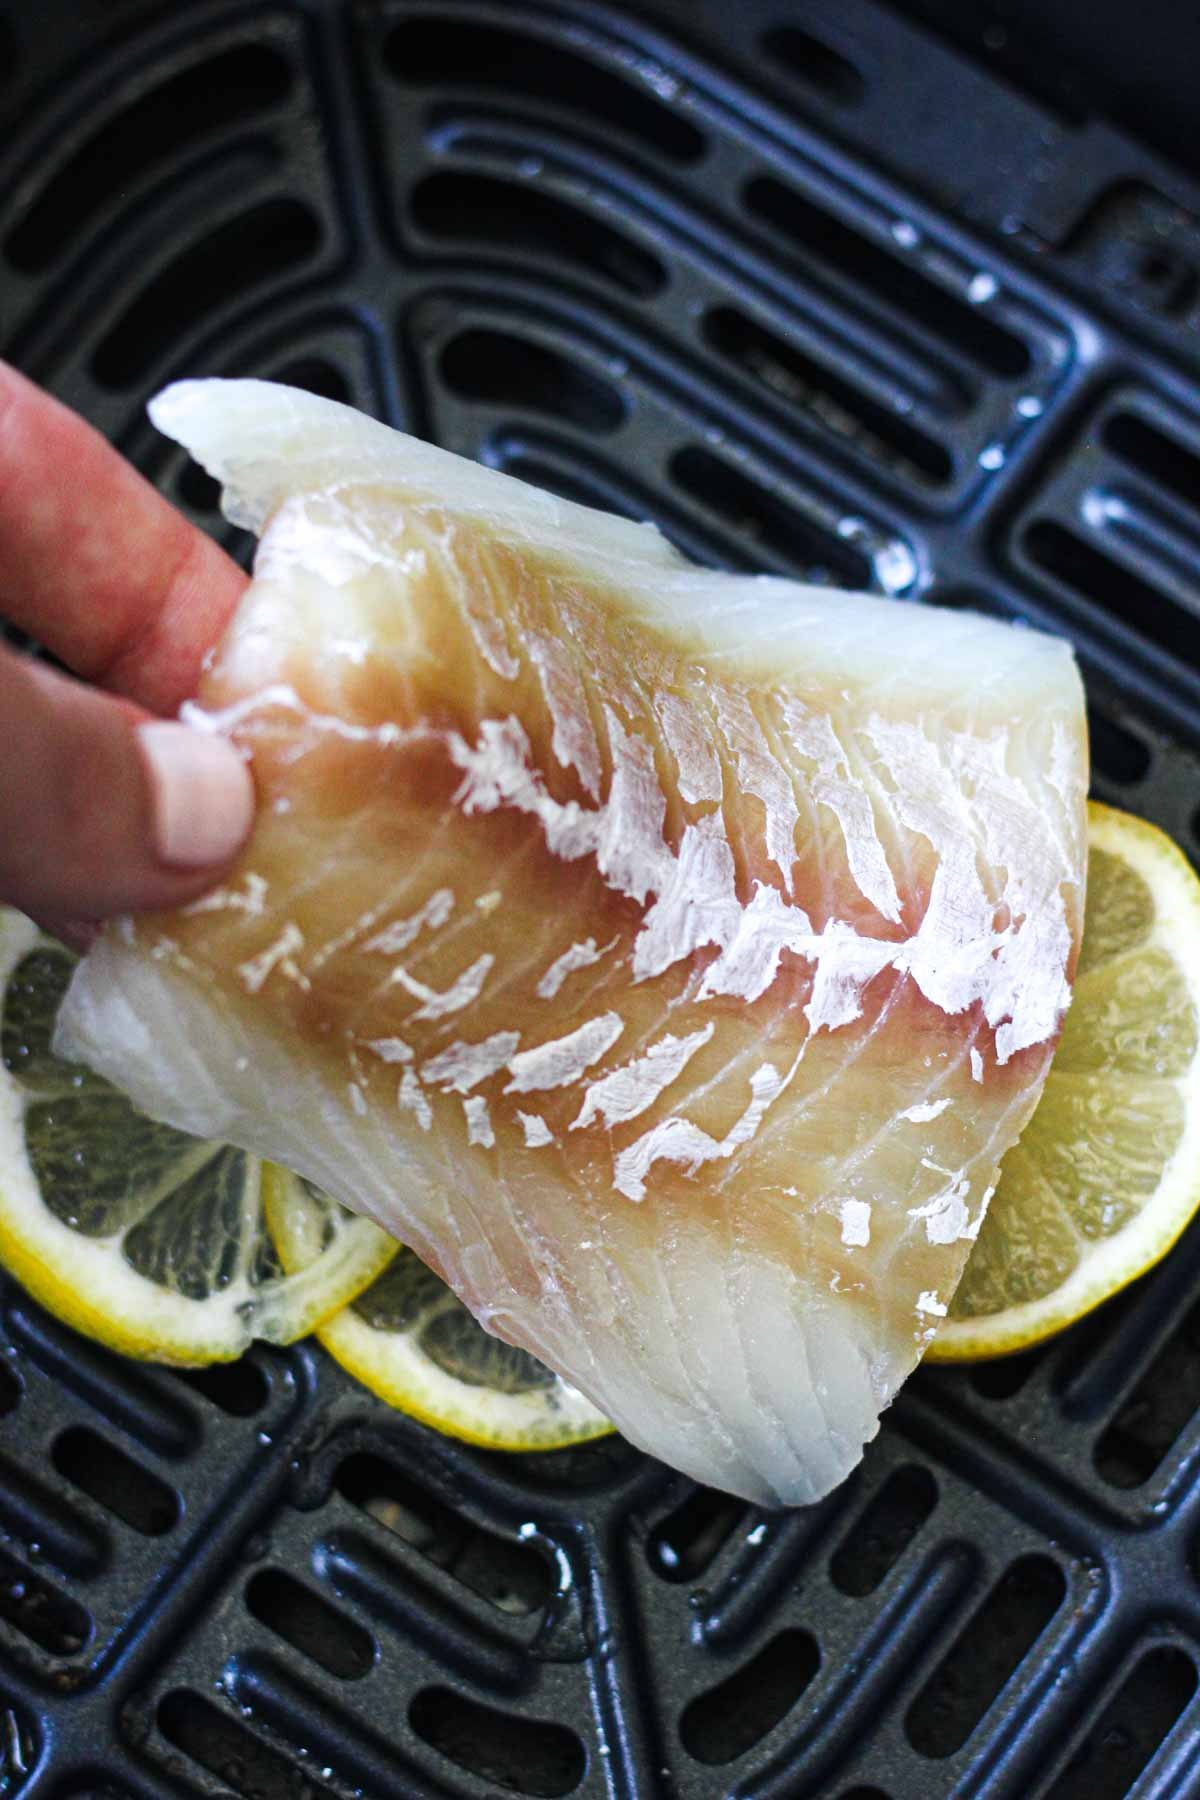 a piece of raw cod fillet in the hand